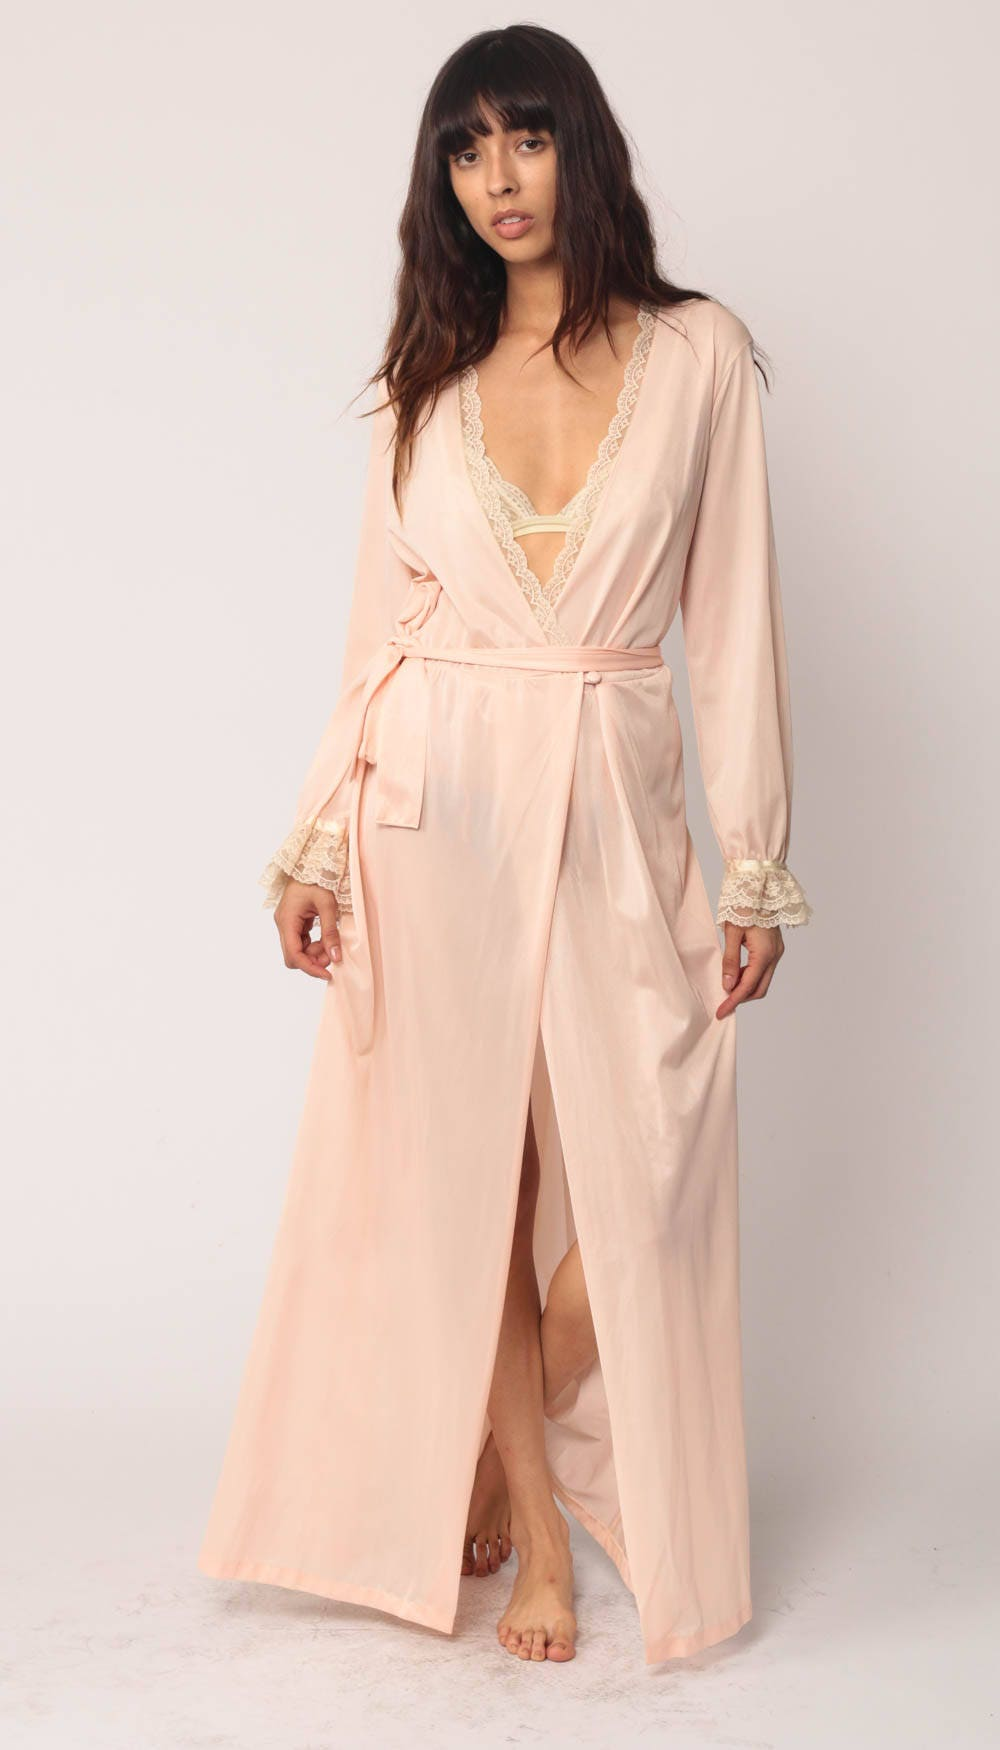 70s Robe Pastel Robe Jacket Bohemian Lingerie Baby Pink Gown